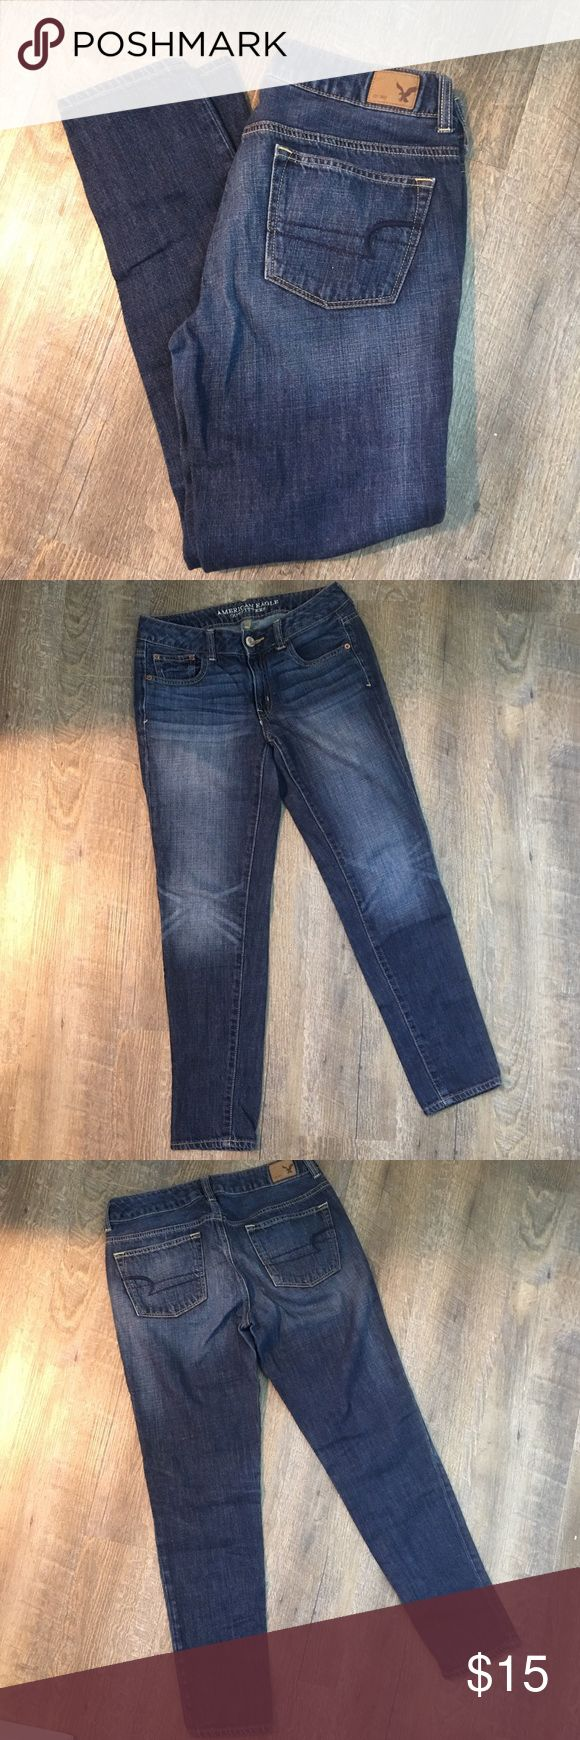 """AE Outfitters Skinny jeans🔅28"""" waist🔅8"""" rise🔅27"""" inseam🔅boy jeans American Eagle Outfitters Jeans Skinny"""